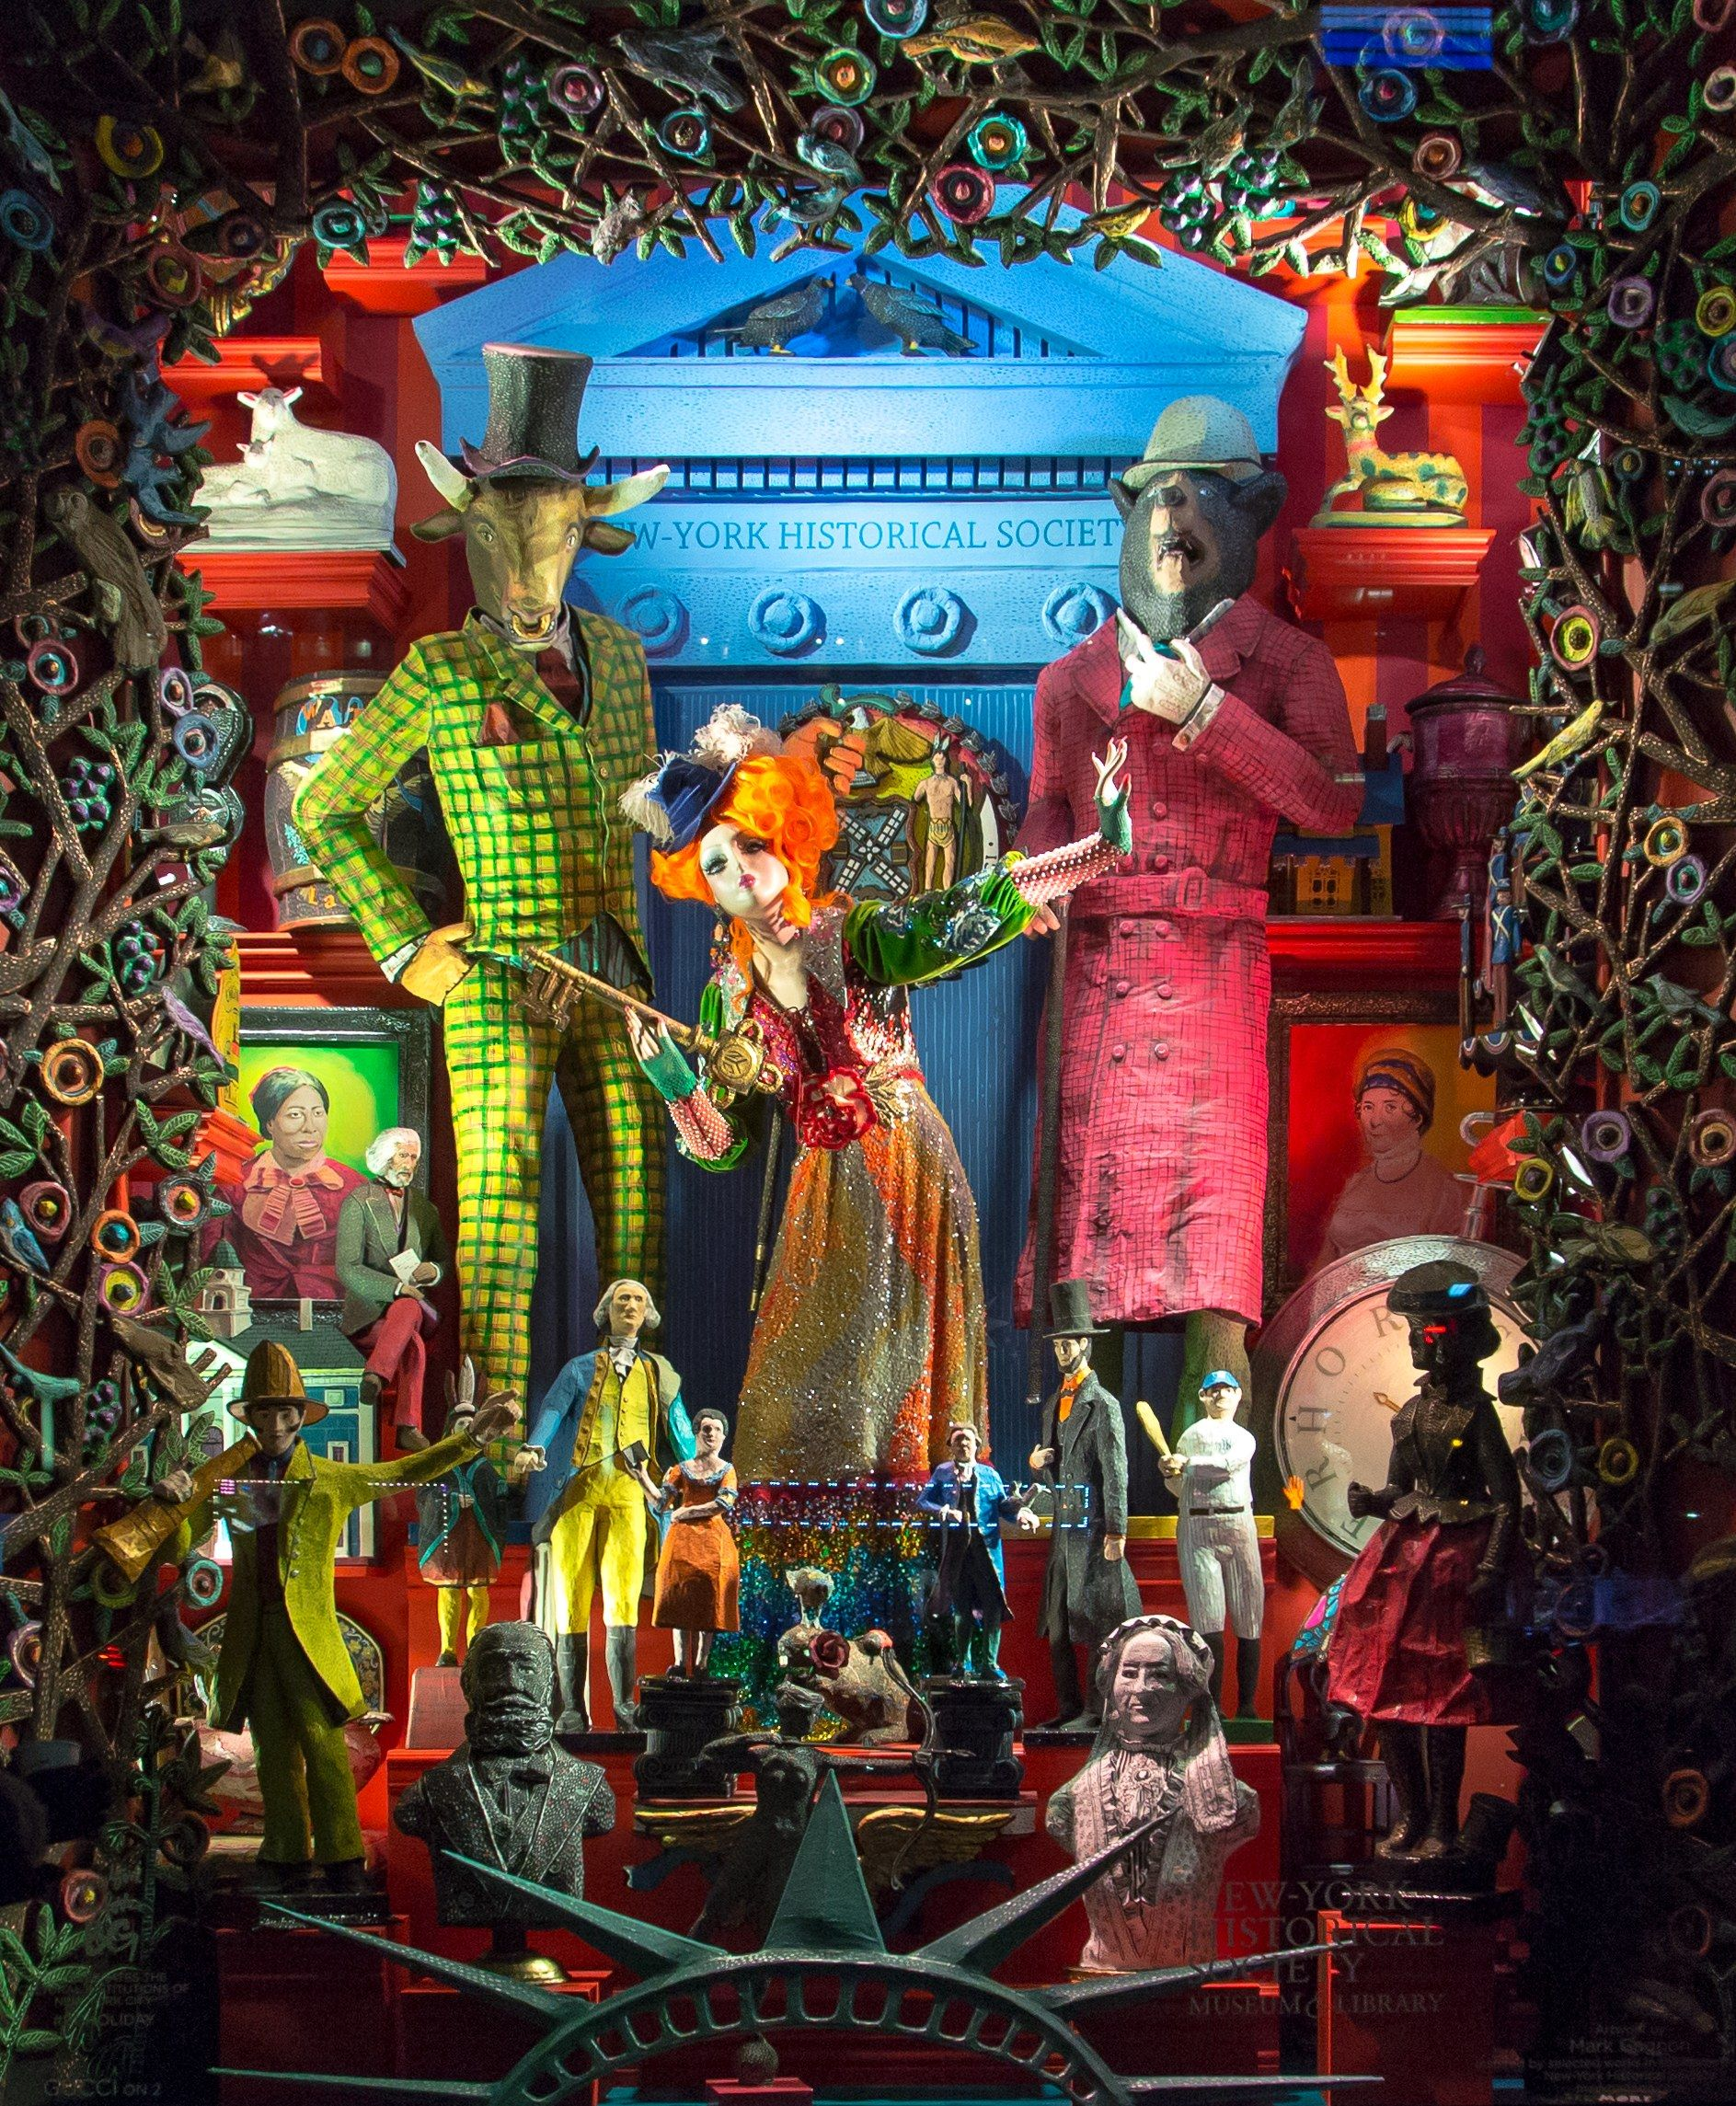 Bergdorf Goodman Christmas Windows 2020 Bergdorf Goodman's Holiday Windows Are Here—and They're Better